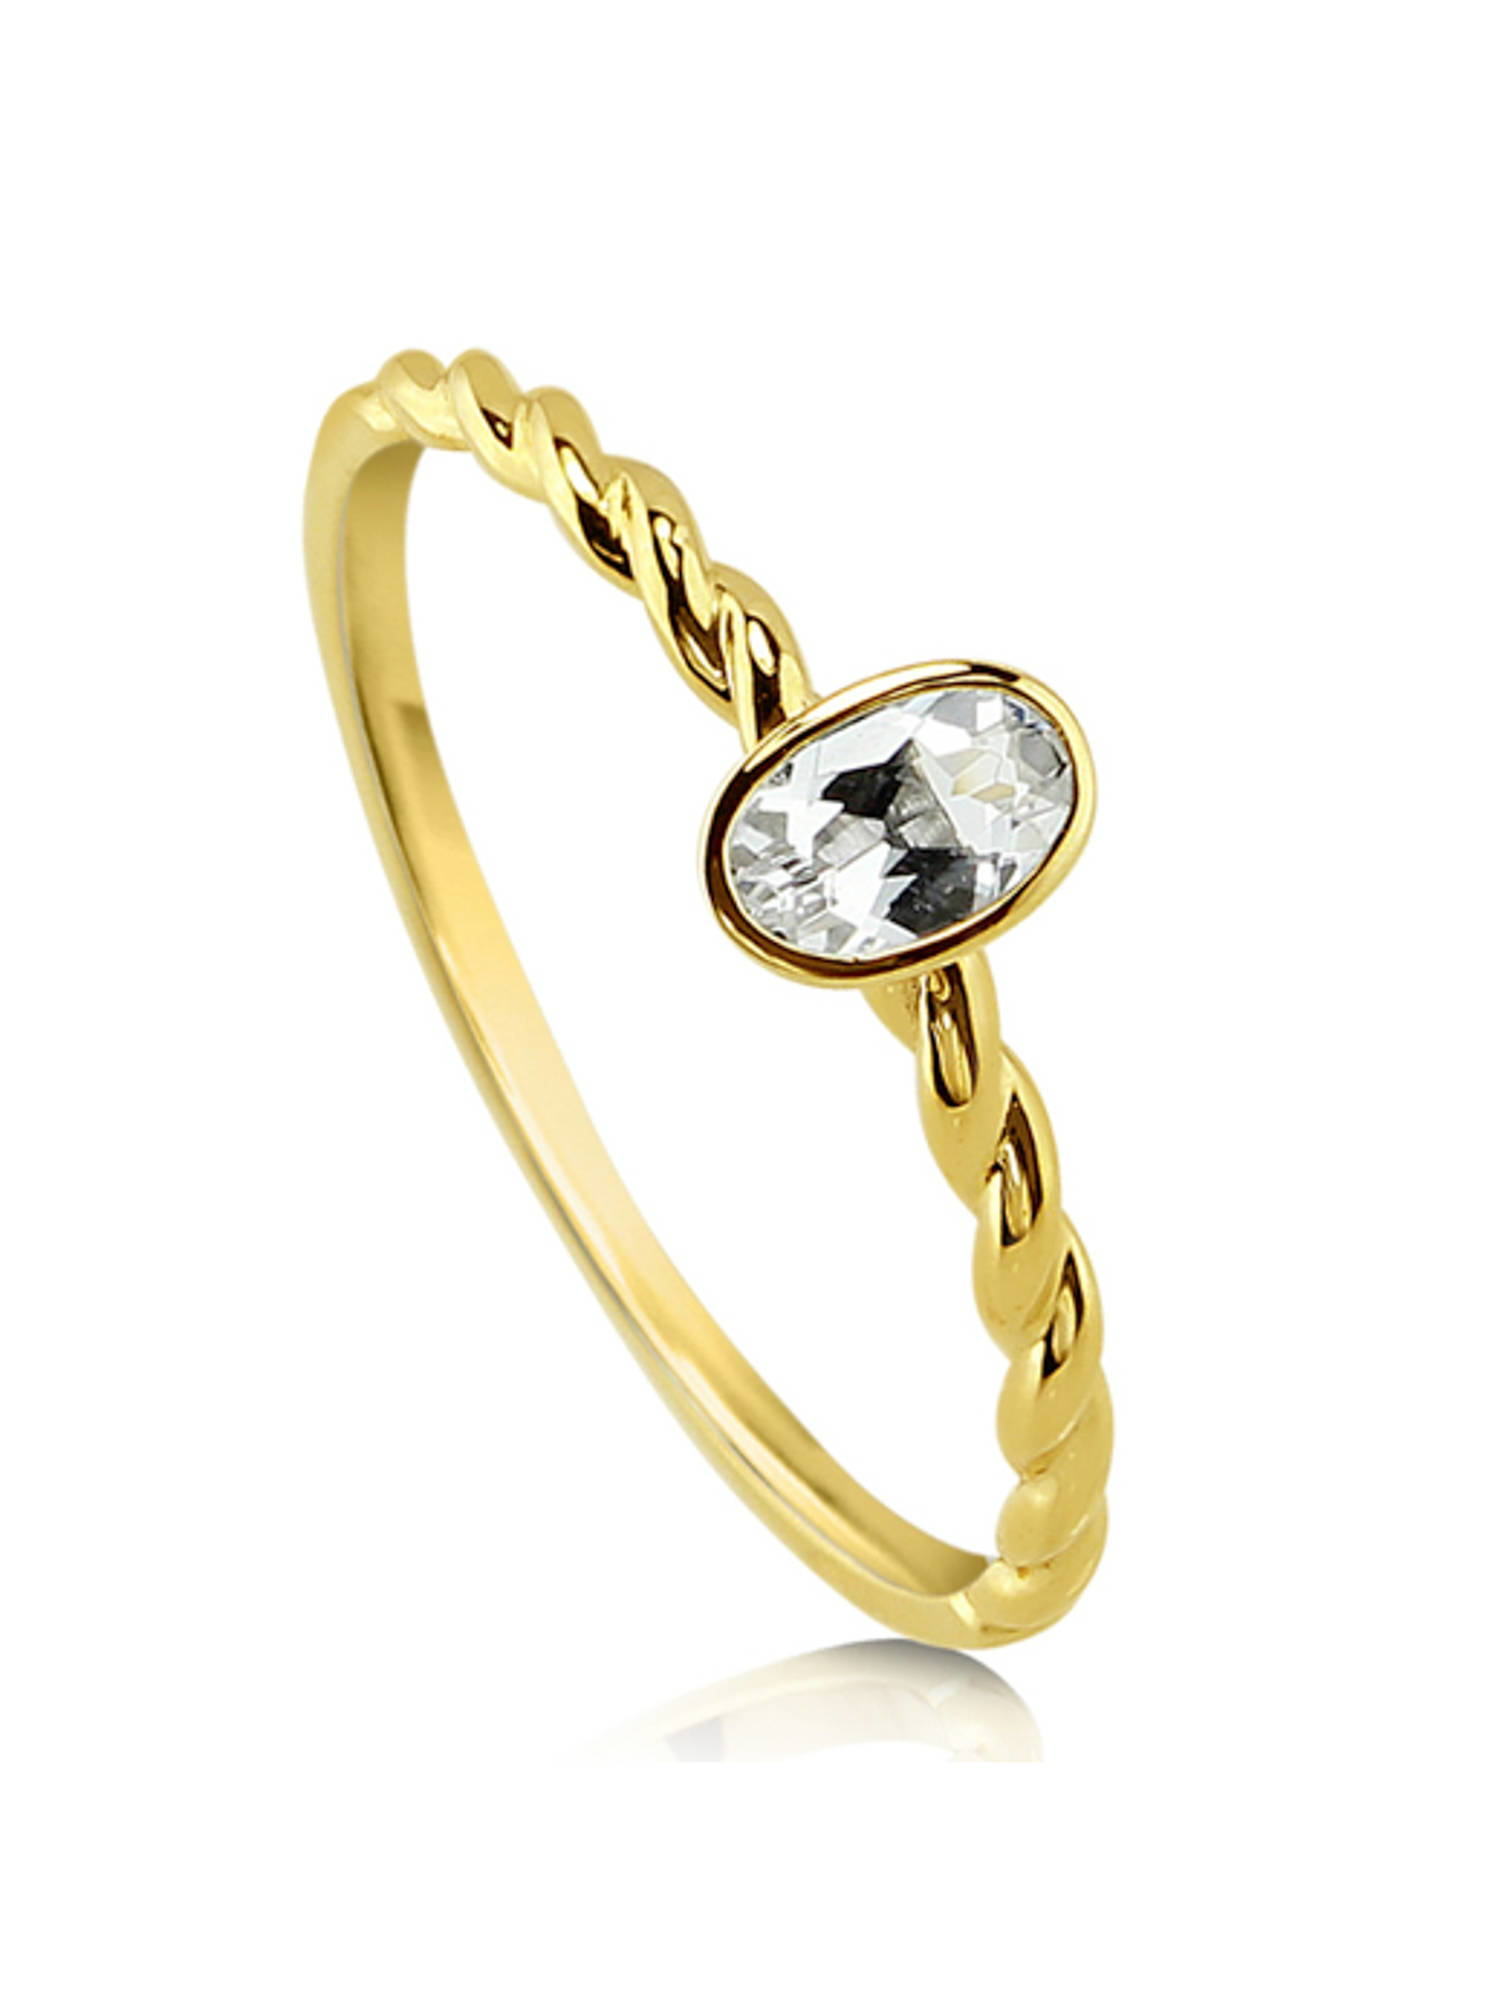 10K Yellow Gold Oval Cut Topaz Solitaire Cable Promise Ring Size 4